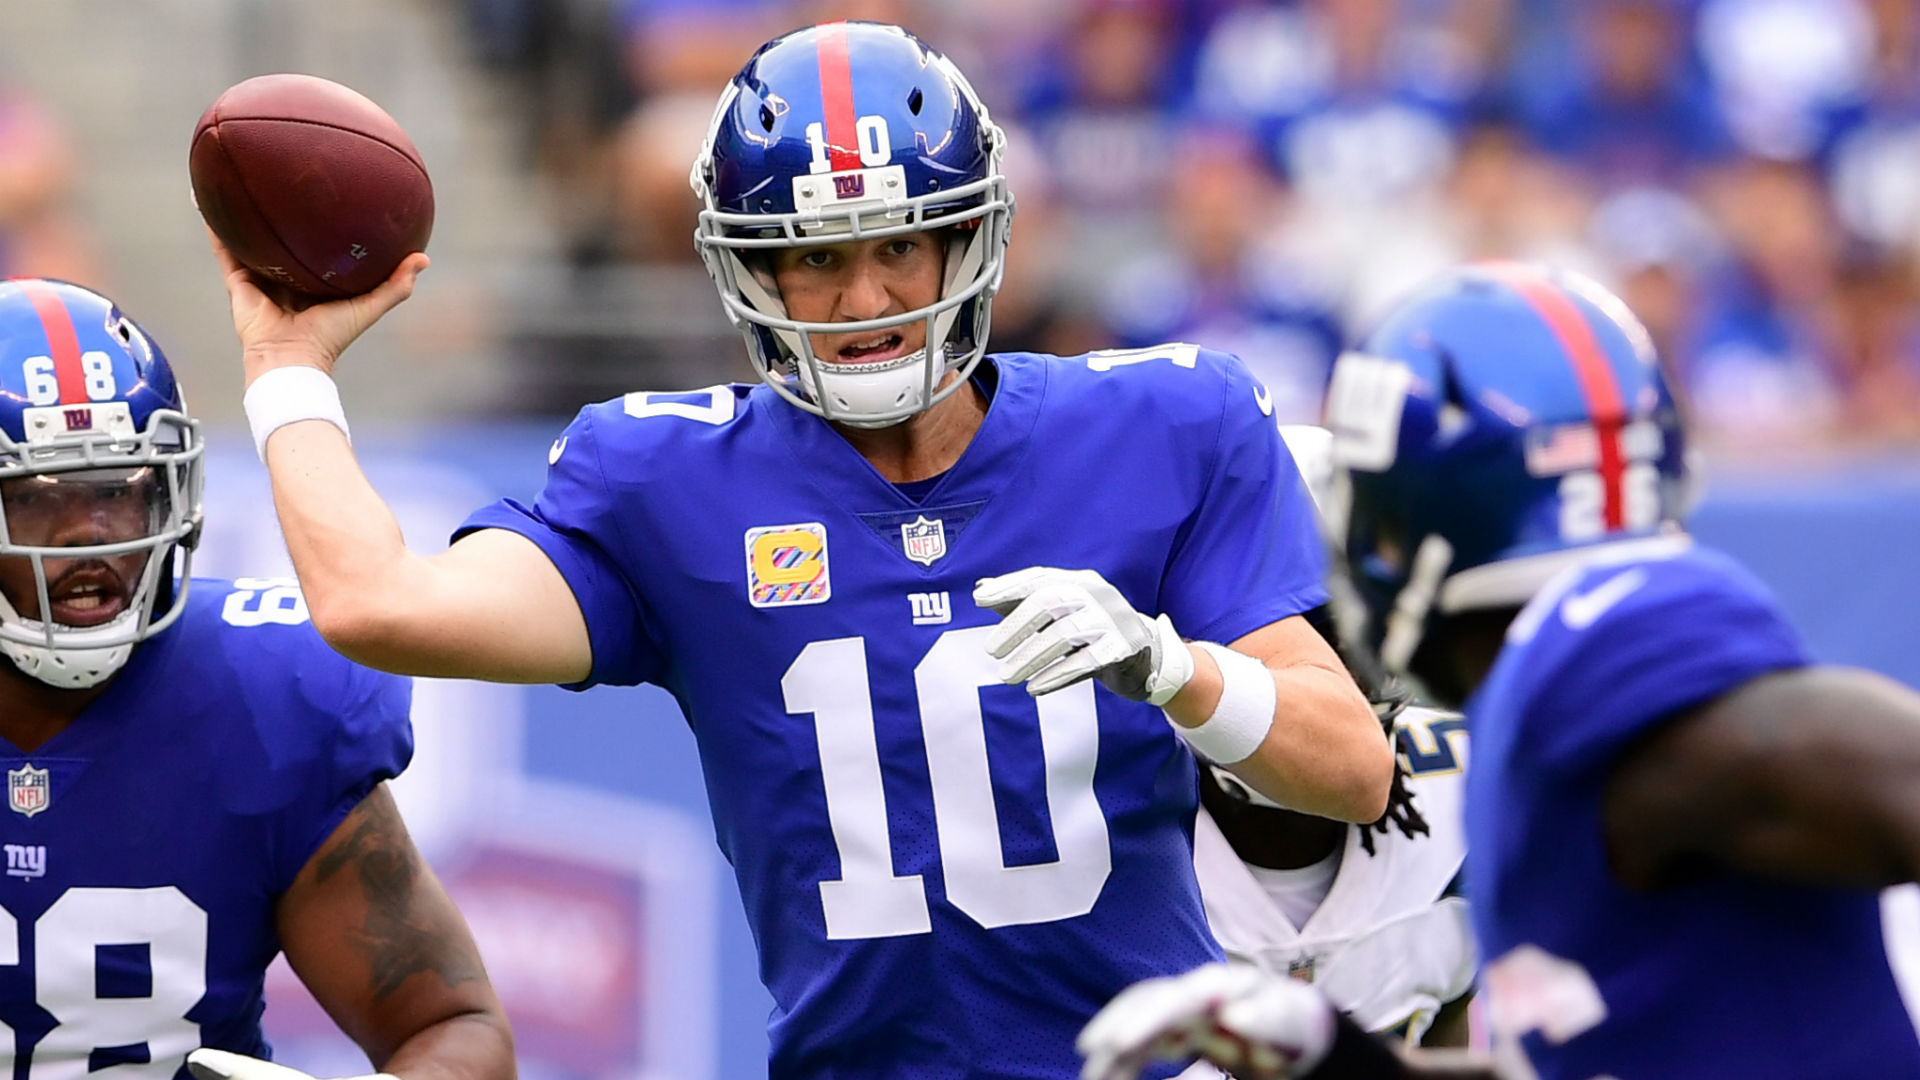 Giants beat 49ers 27-23